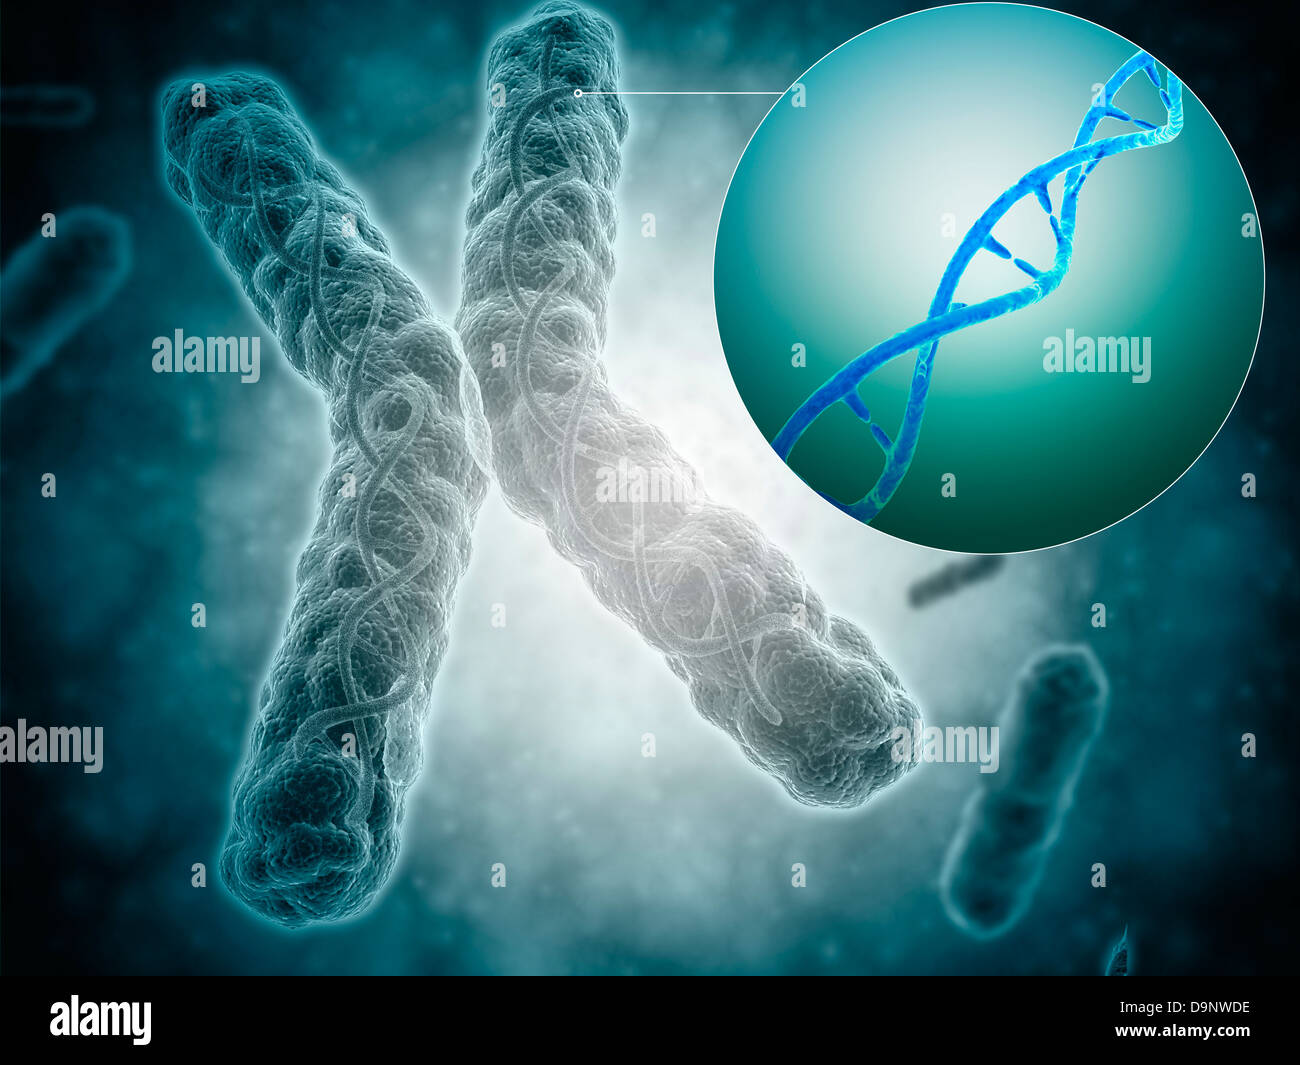 Conceptual image of a telomere showing DNA structure. - Stock Image